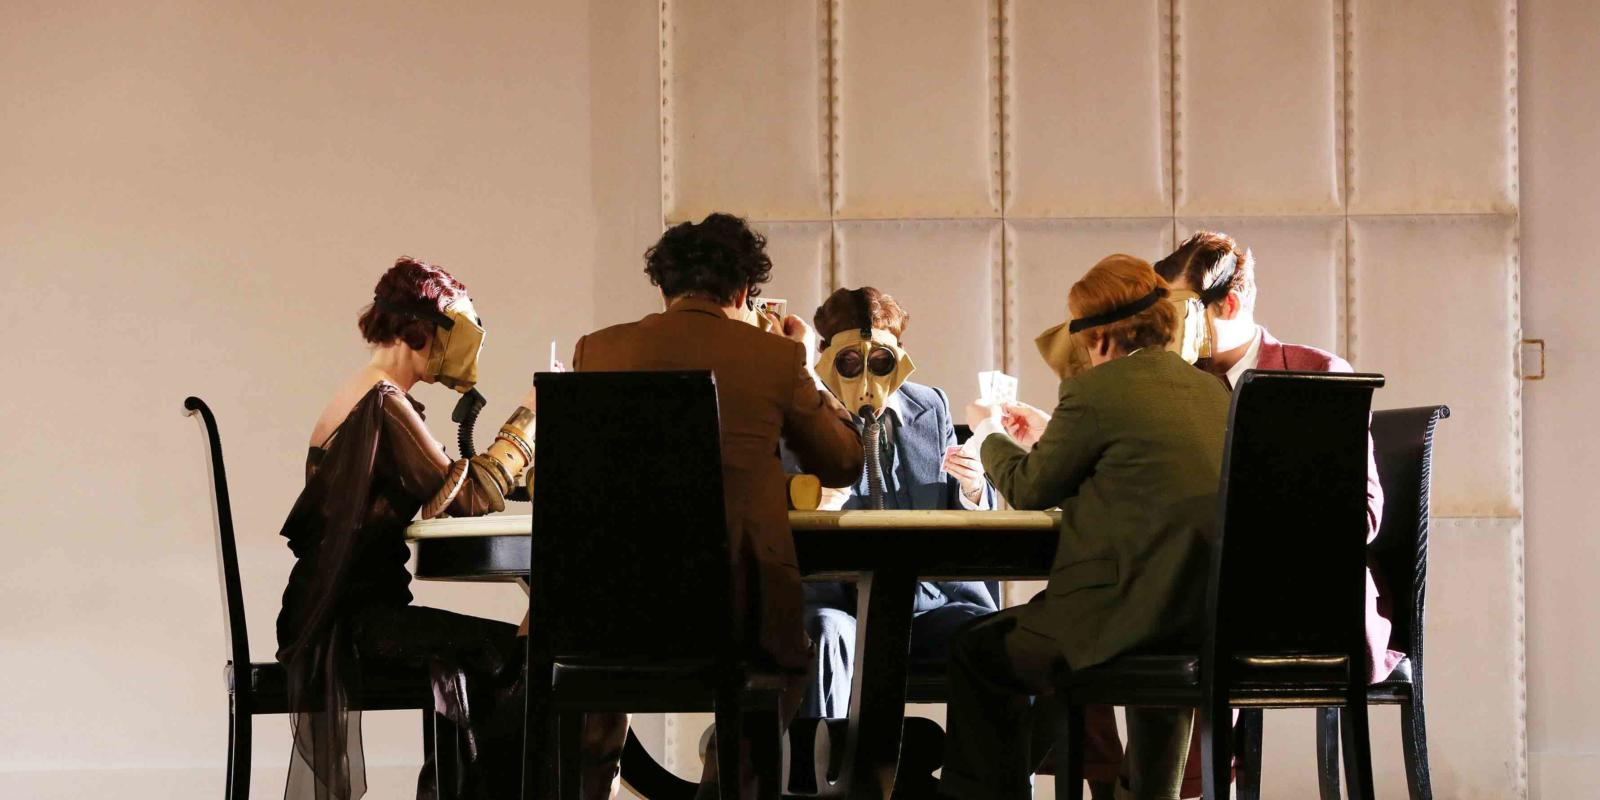 The Partenope cast playing cards at a table during ENO's 2017 production